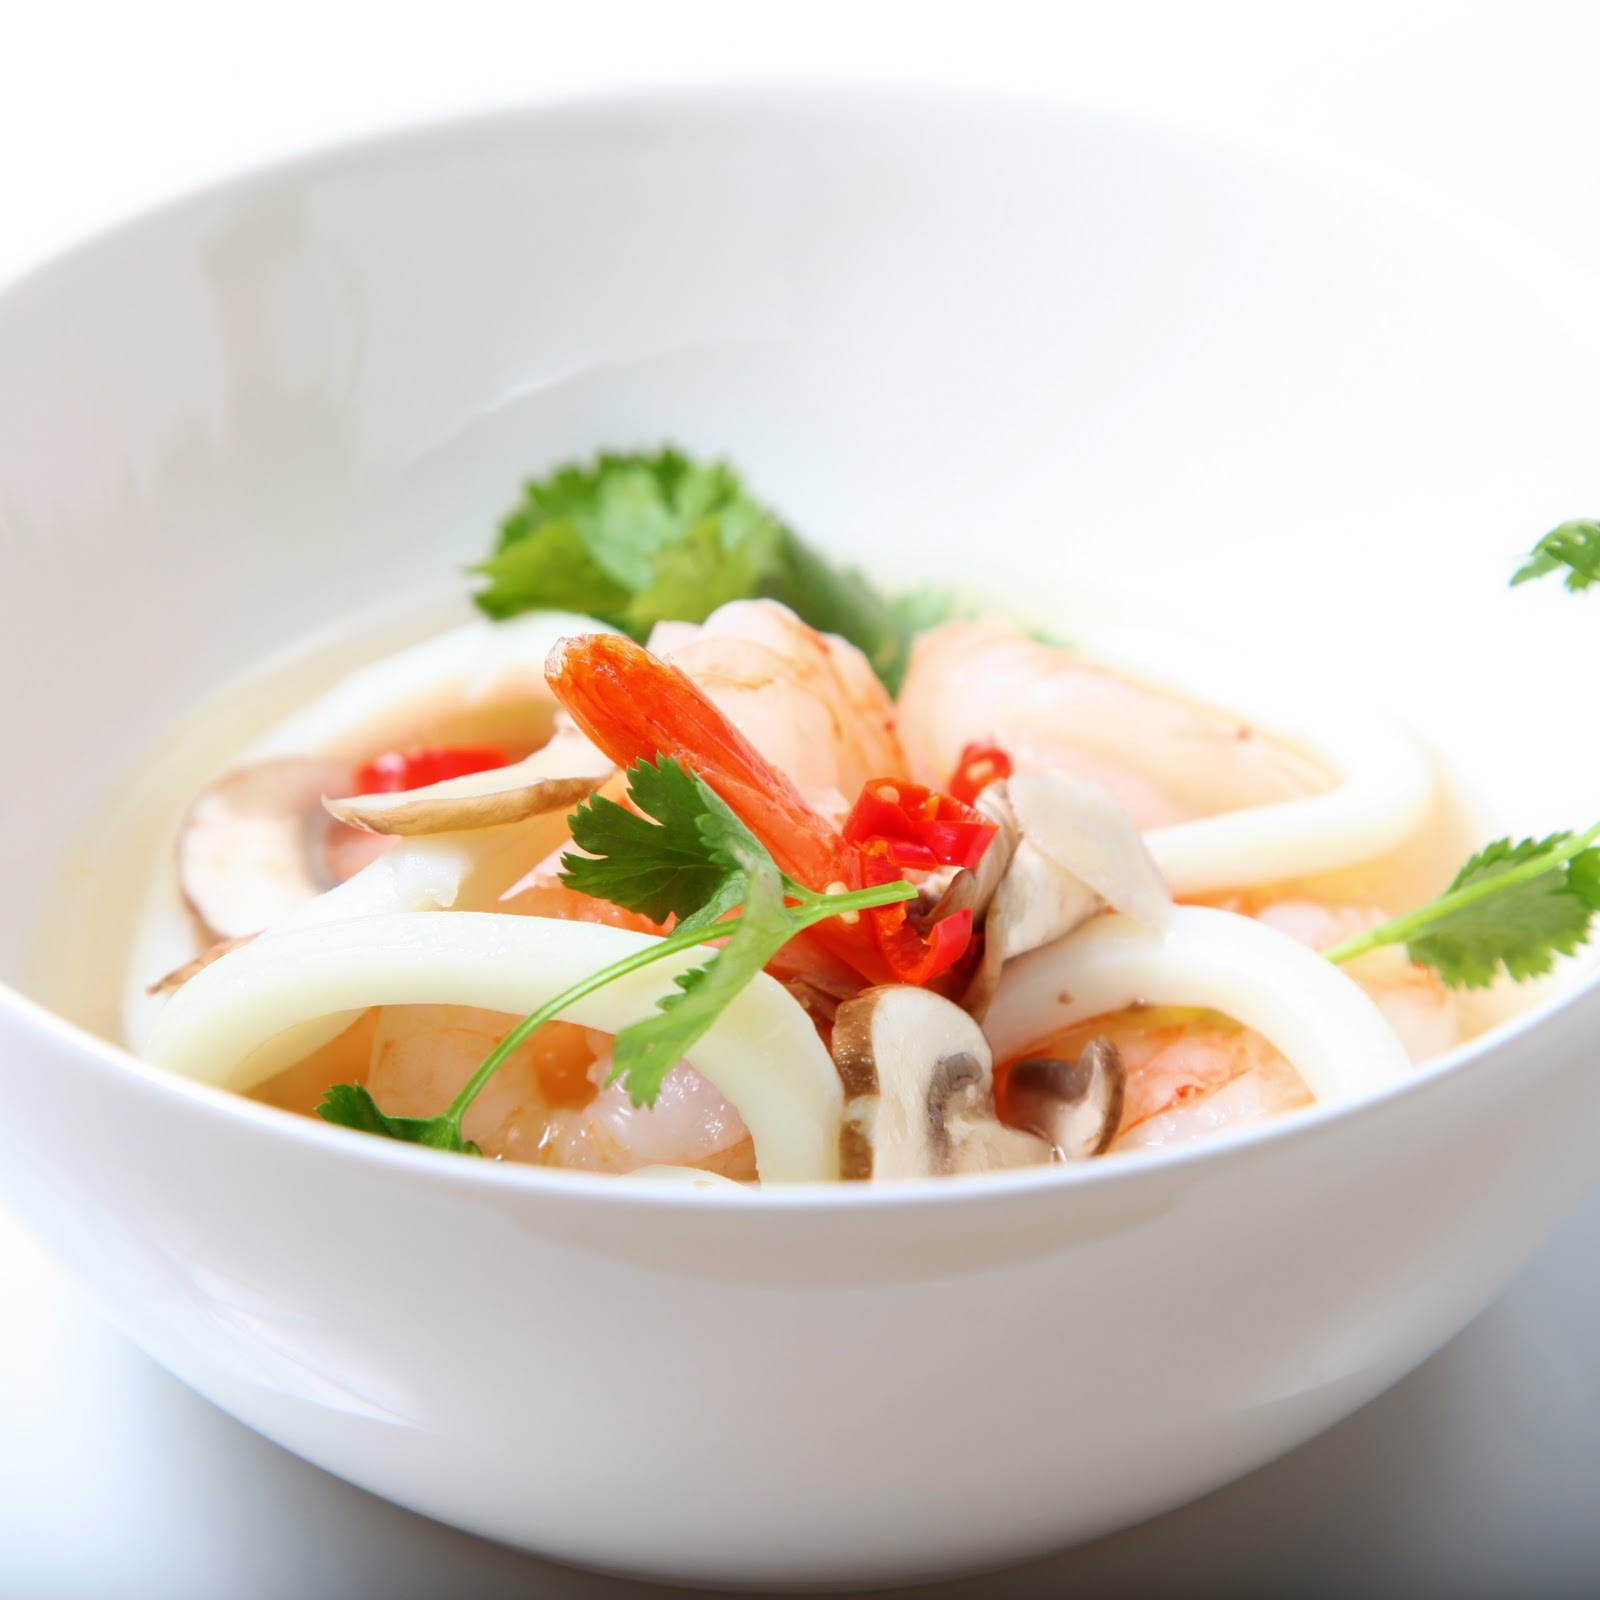 The 10 cent Diet: Tom Yum Goong - Hot & Sour Soup